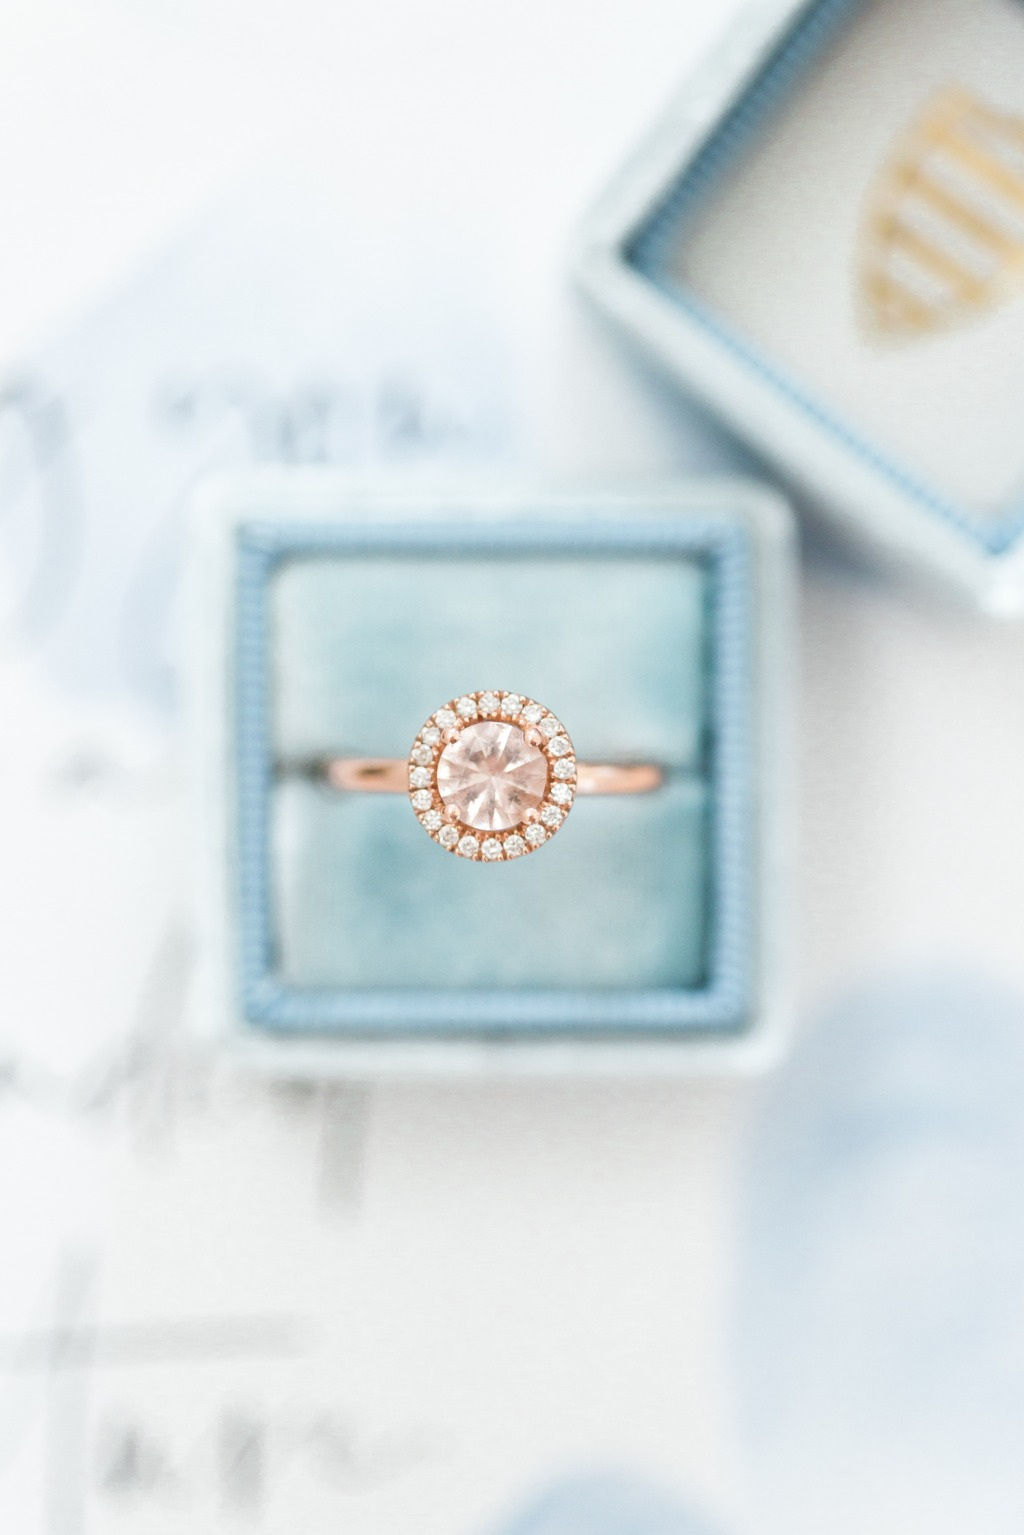 Terri-Lynn Warren Photography takes the most beautiful photos! Look at this gorgeous capture of brides Allie and Sam's engagement ring